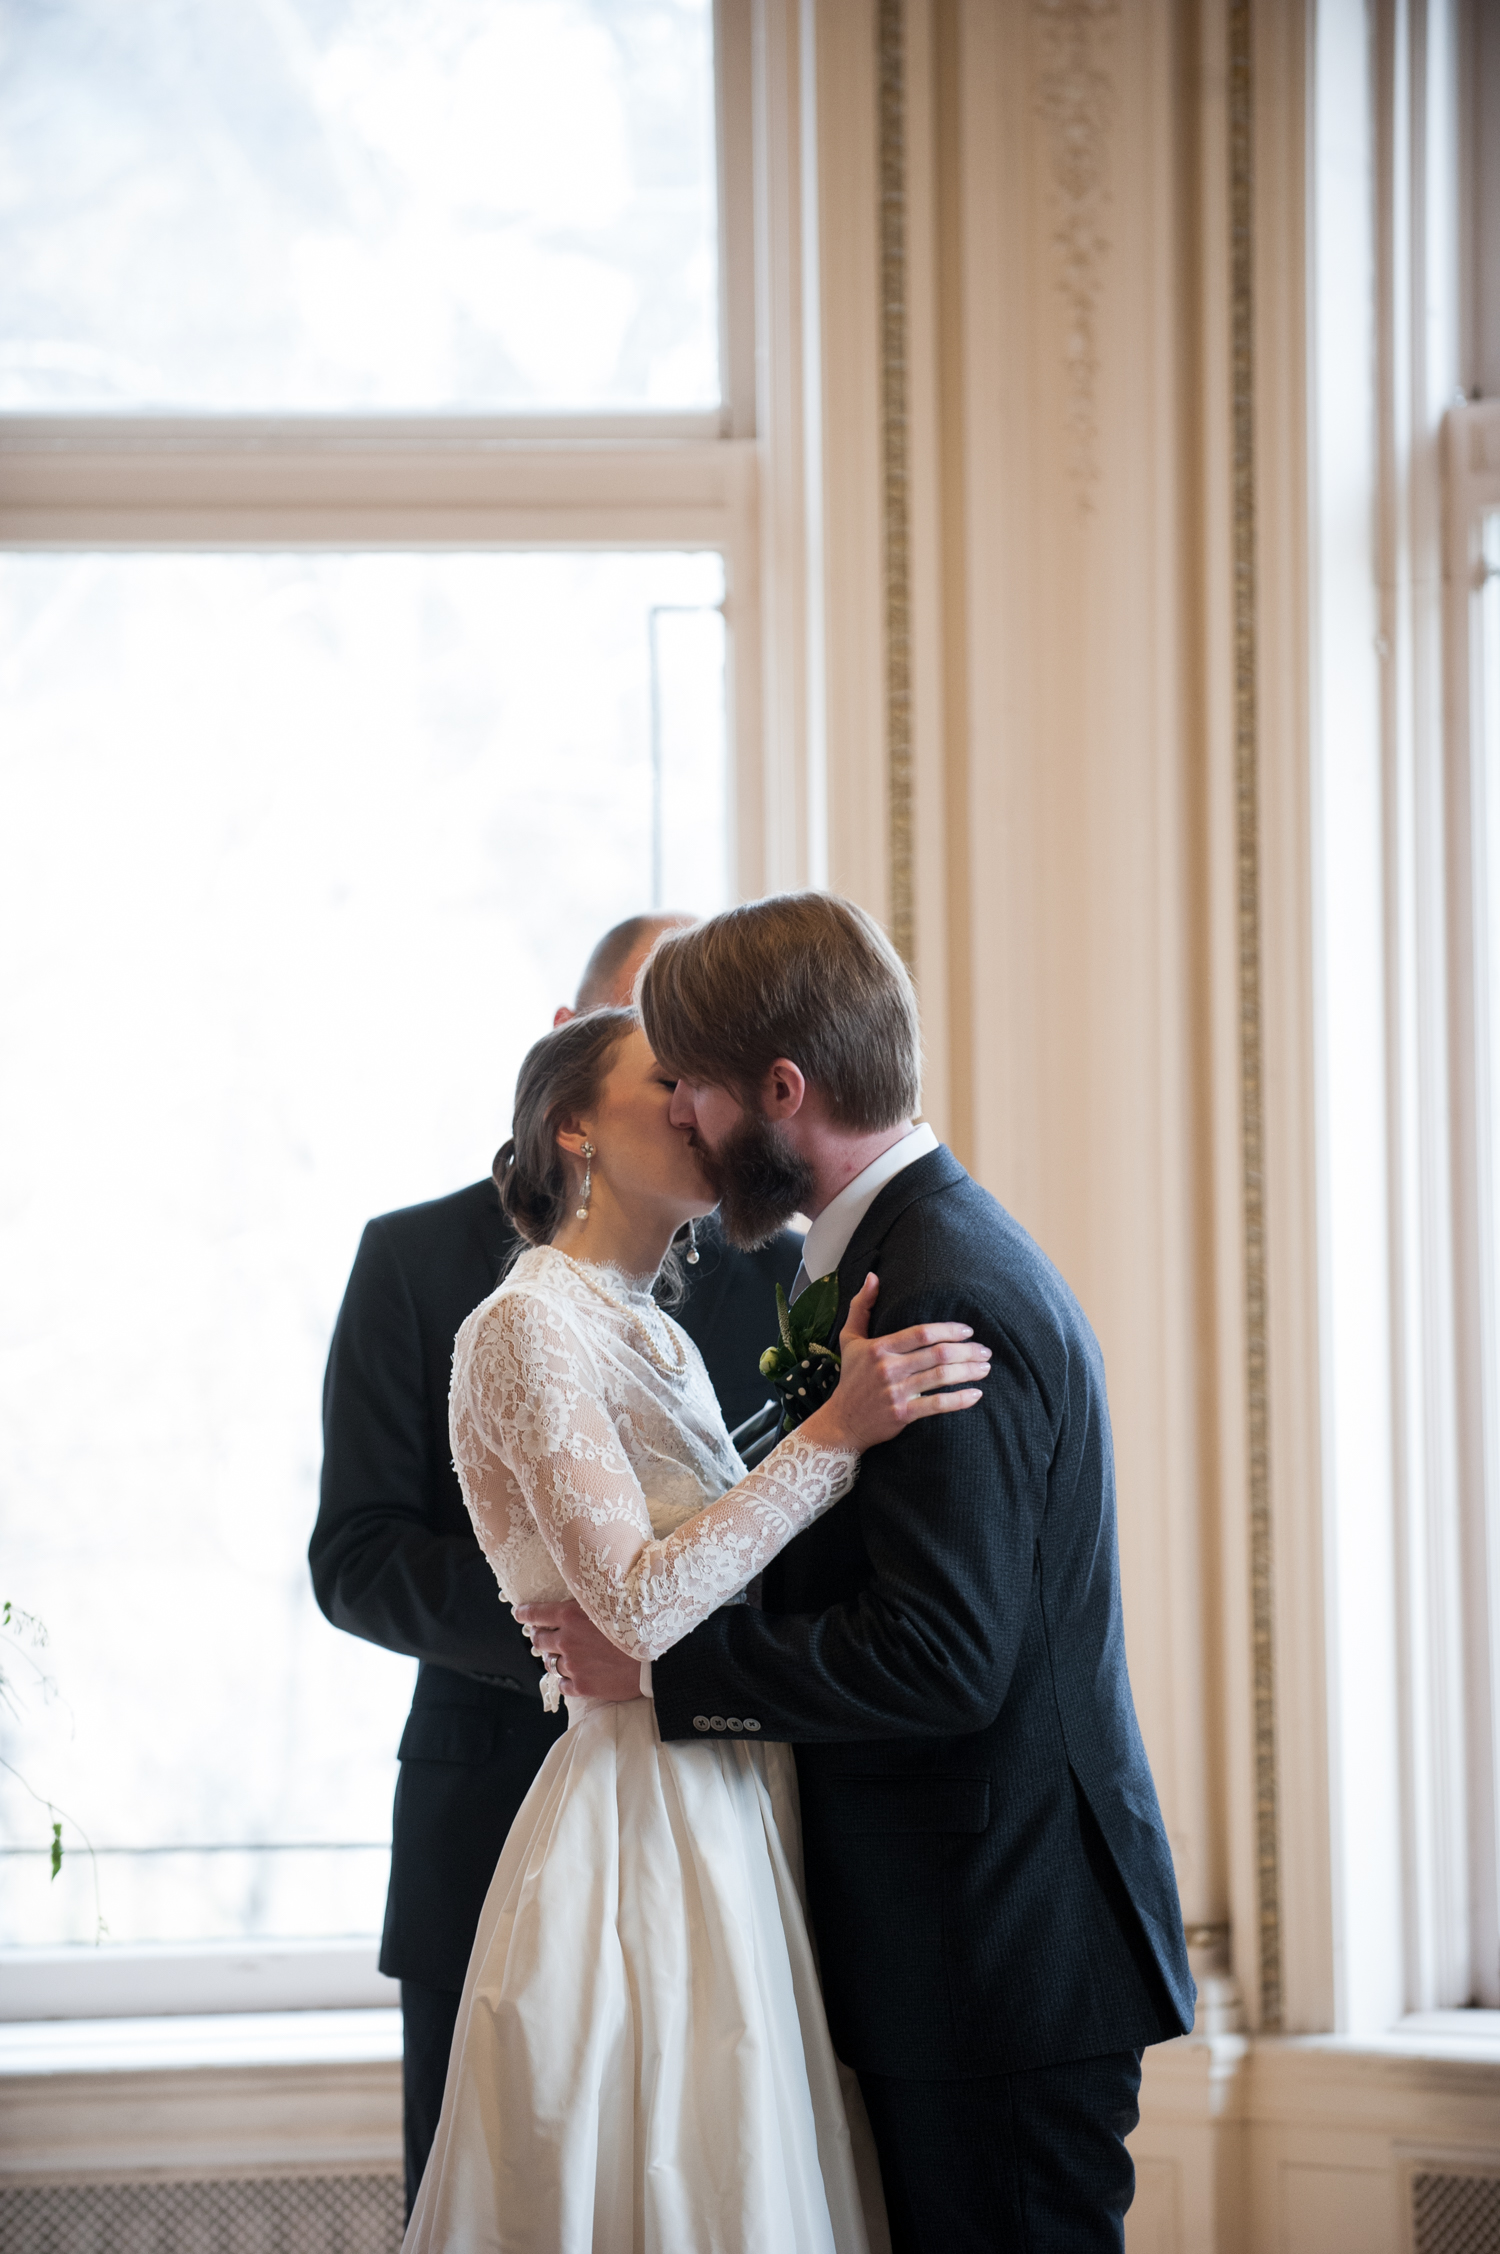 first_kiss_as_husband_and_wife_in_classy_vintage_wedding_minneapolis.jpeg